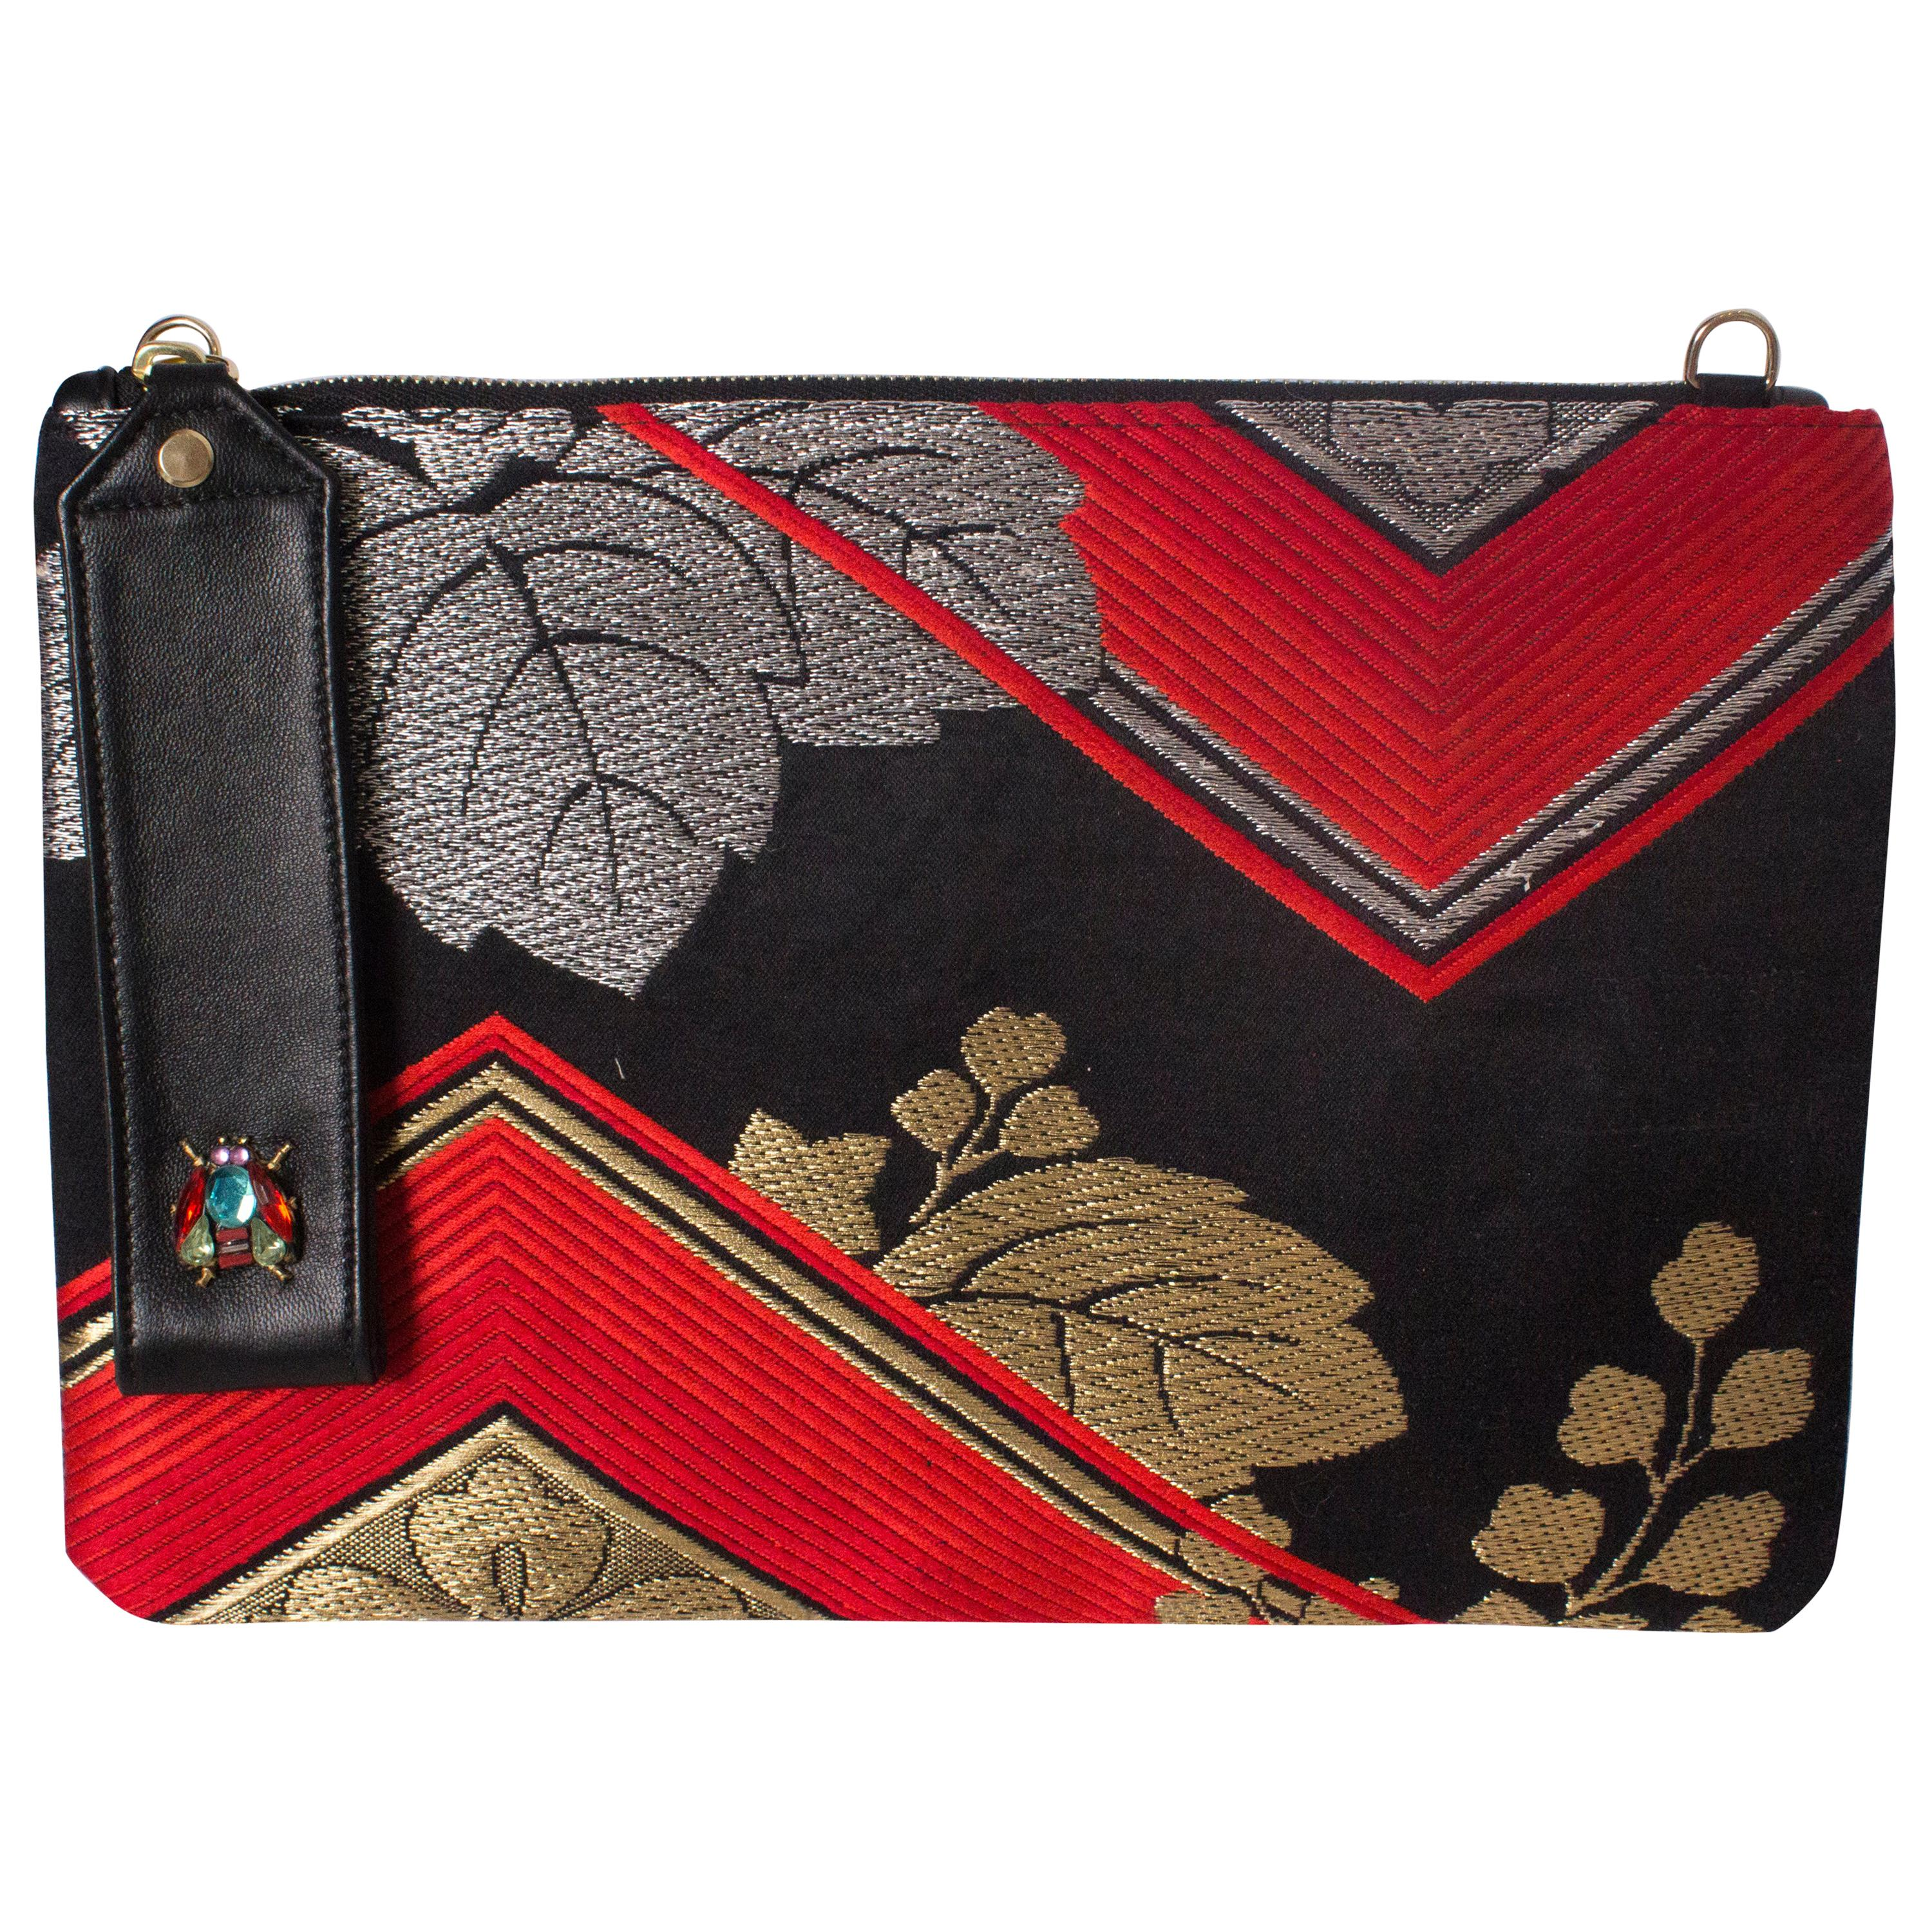 Embroidered Pouch Bag by Mame Huku